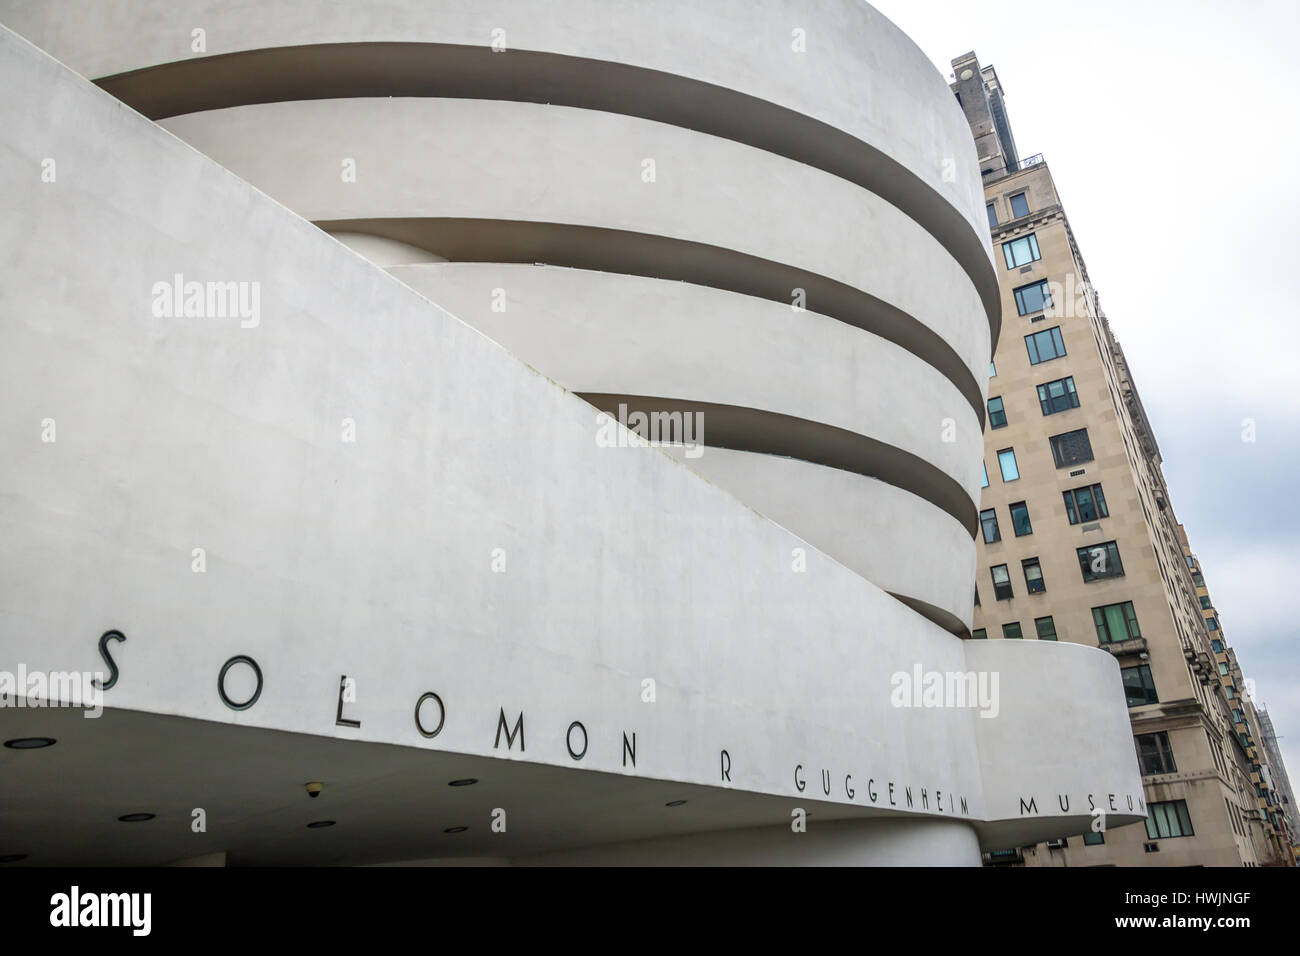 The Solomon R. Guggenheim Museum of modern and contemporary art - New York, USA Stock Photo